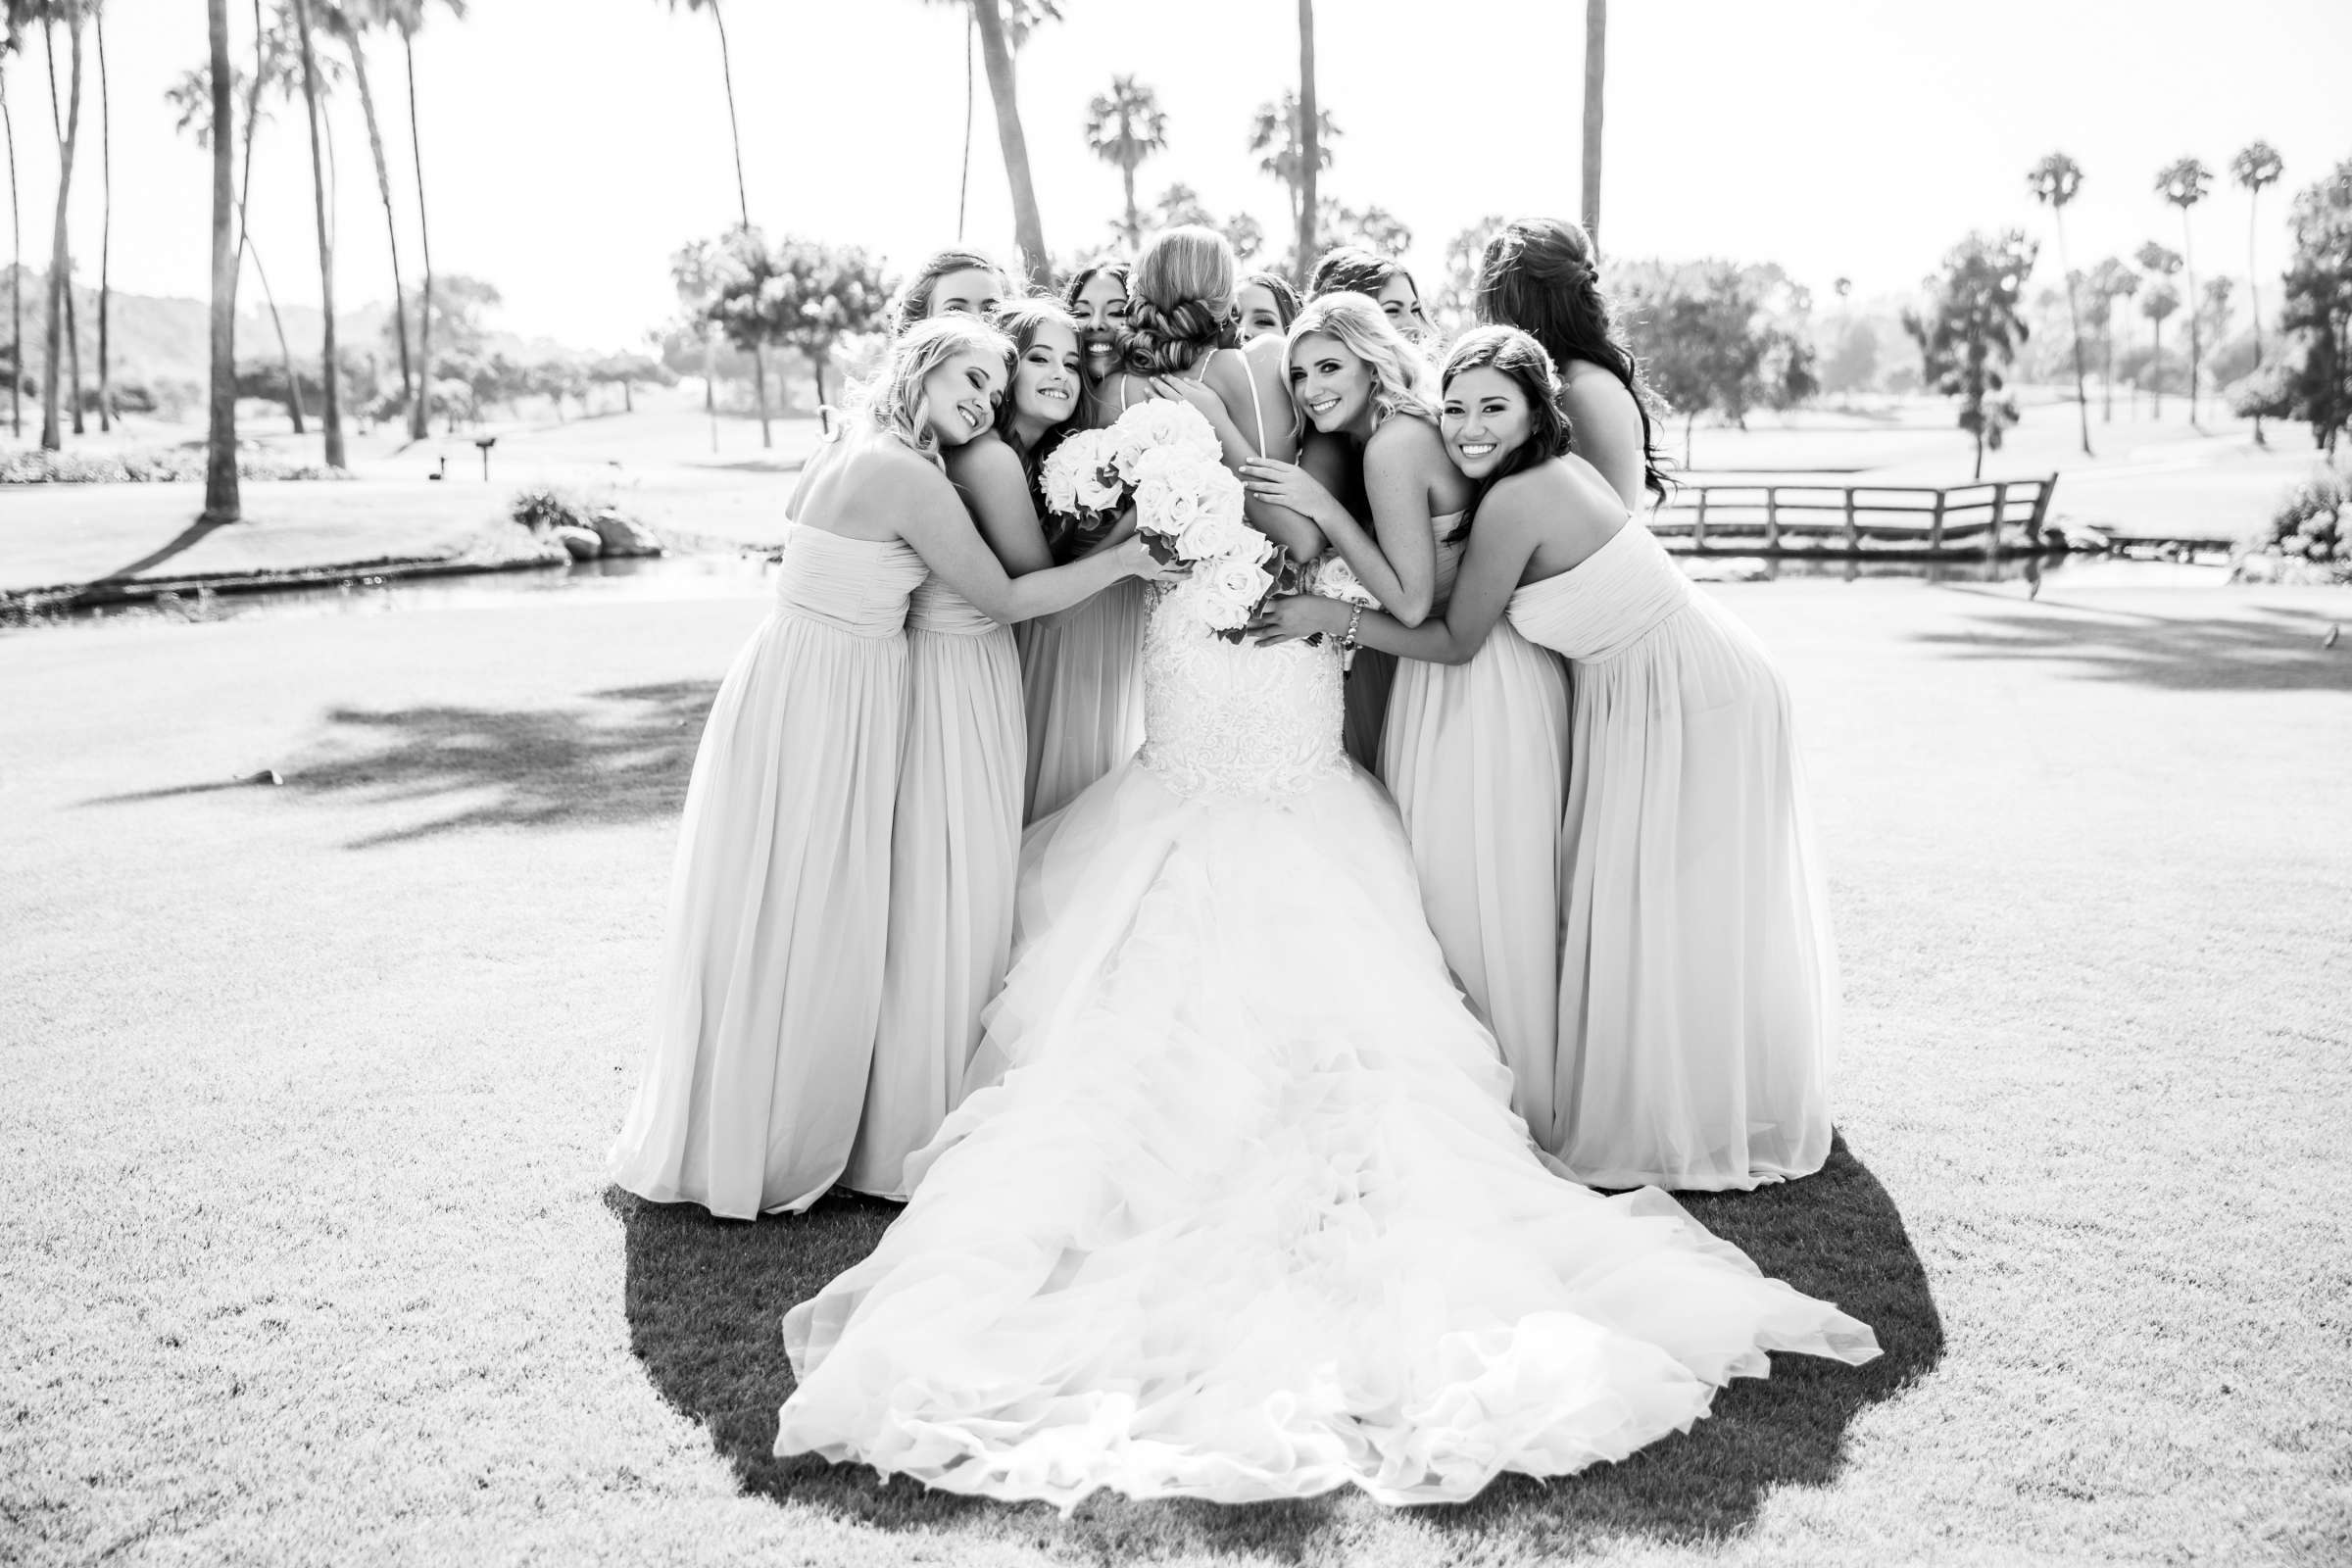 Fairbanks Ranch Country Club Wedding coordinated by Monarch Weddings, Gabriella and Kyle Wedding Photo #72 by True Photography